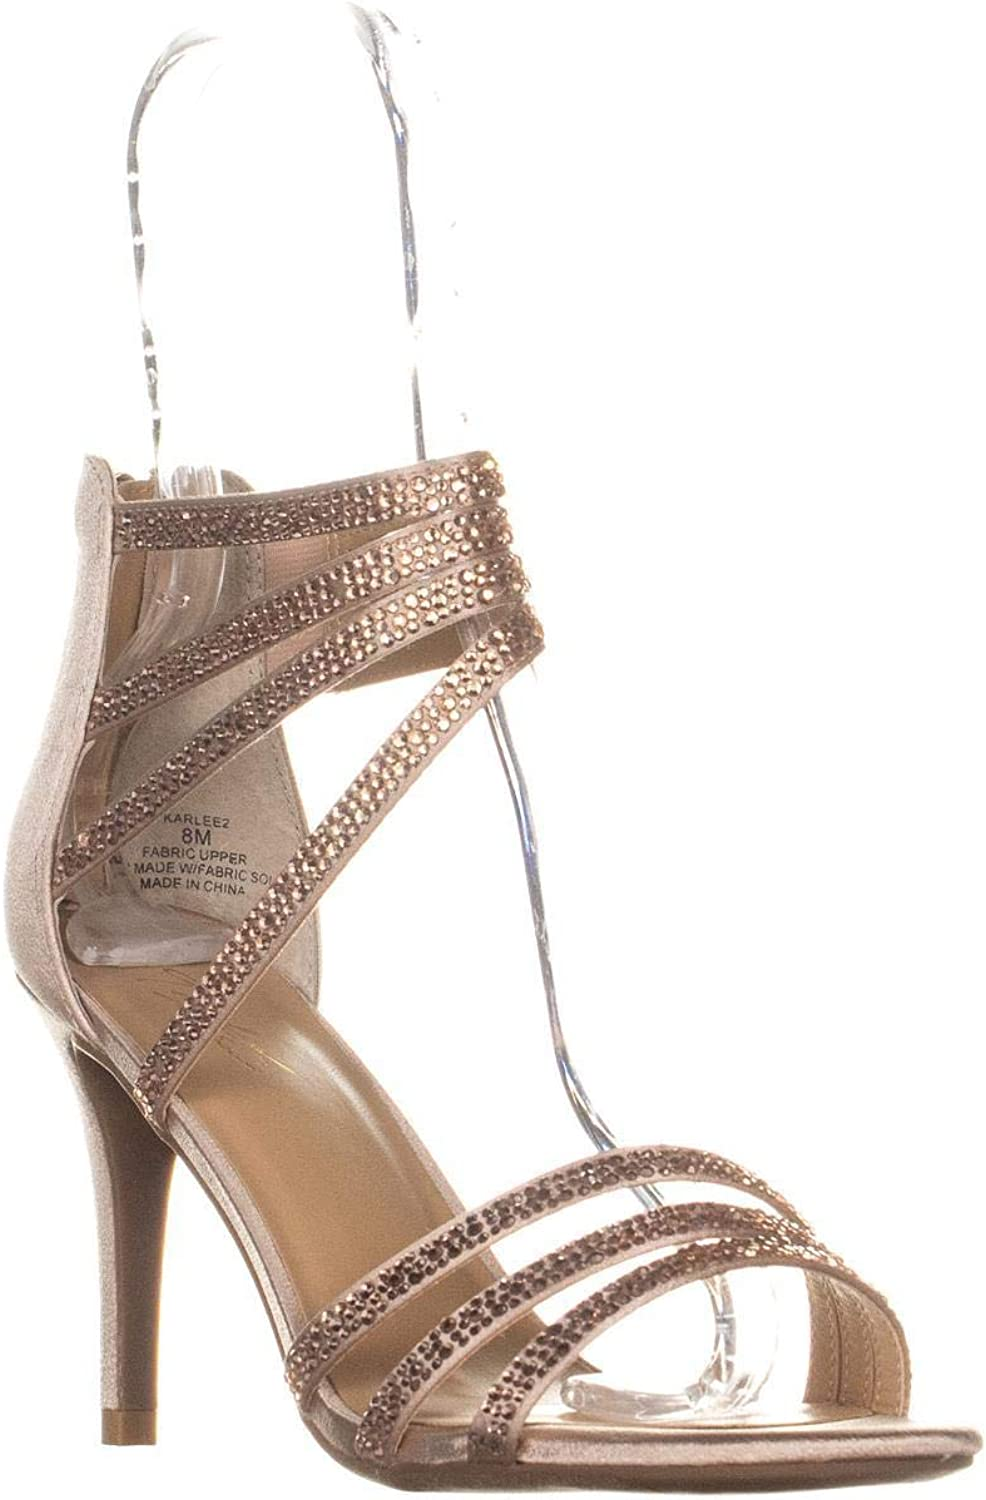 Thalia Sodi Womens Karlee2 Metallic Strappy Dress Sandals